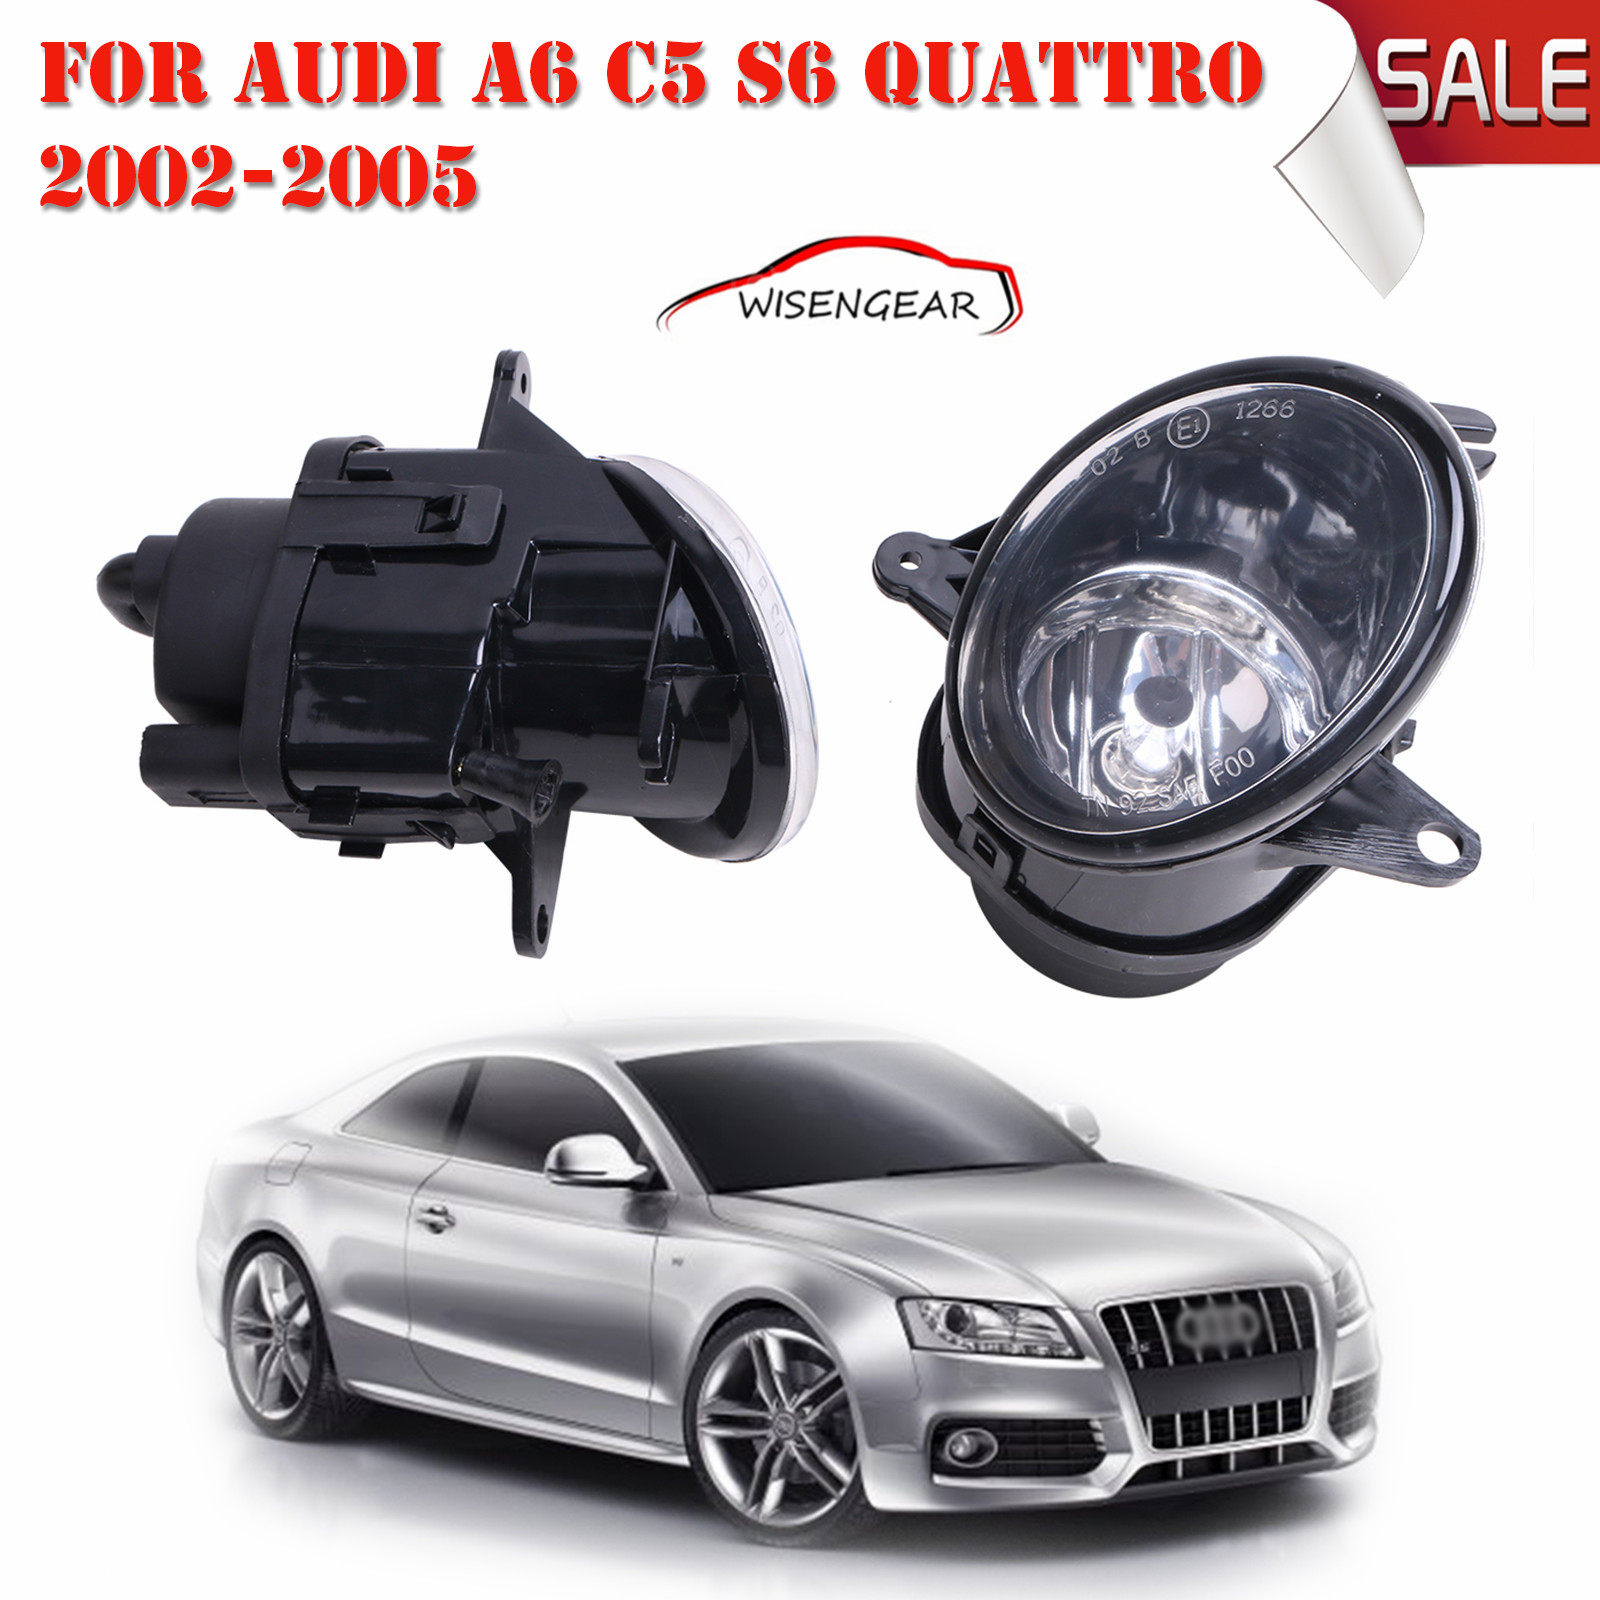 Car Light Clear Lens Front Right+Left Fog Light Lamp With H7 Bulbs For Audi A6 C5 S6 Quattro 2002-2005 C/5<br>